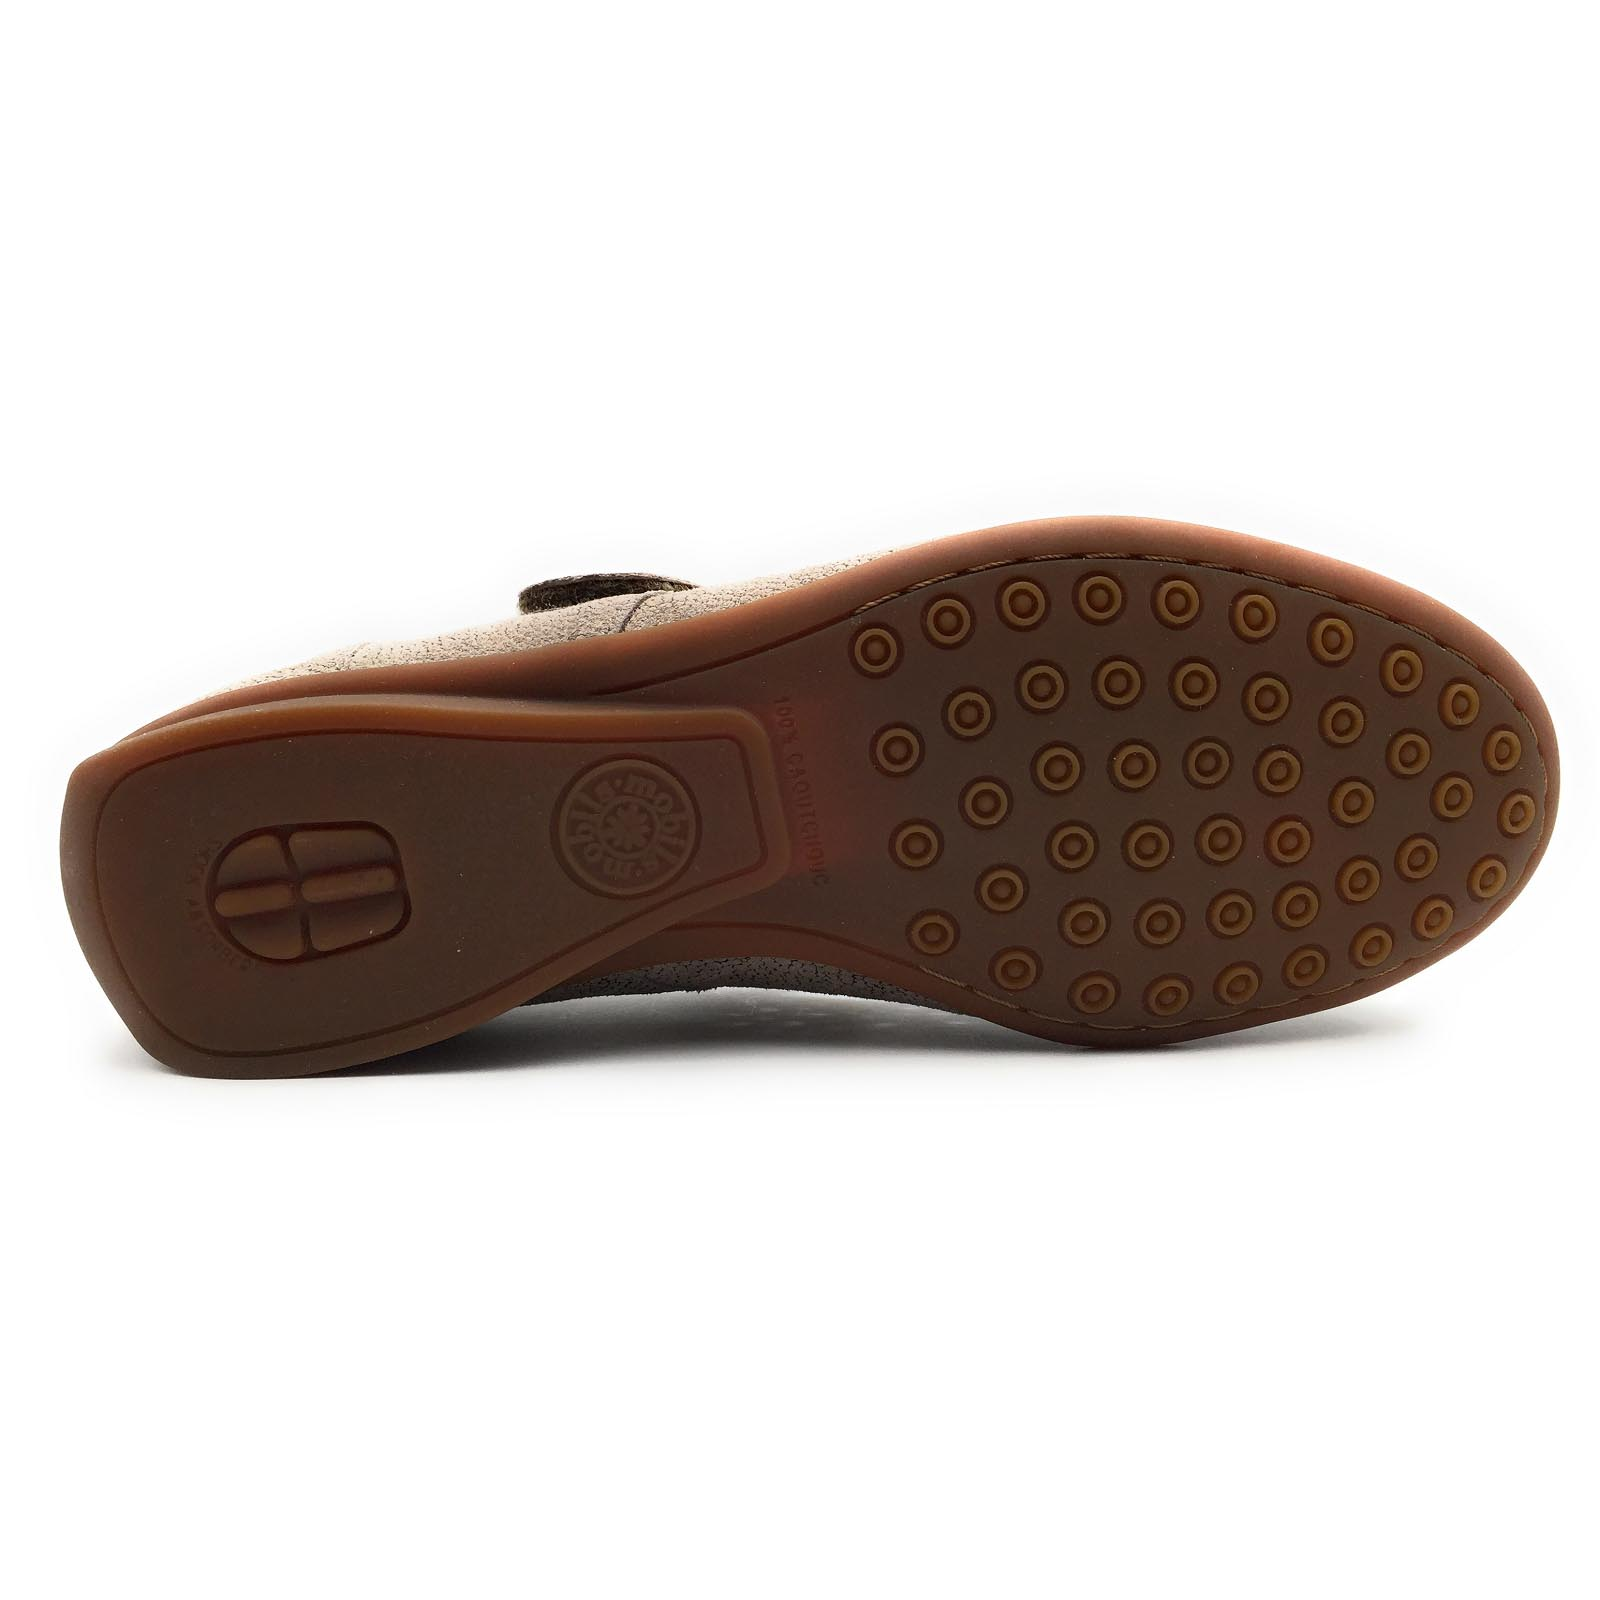 Mobils mary janes fabienne gris1241306_4